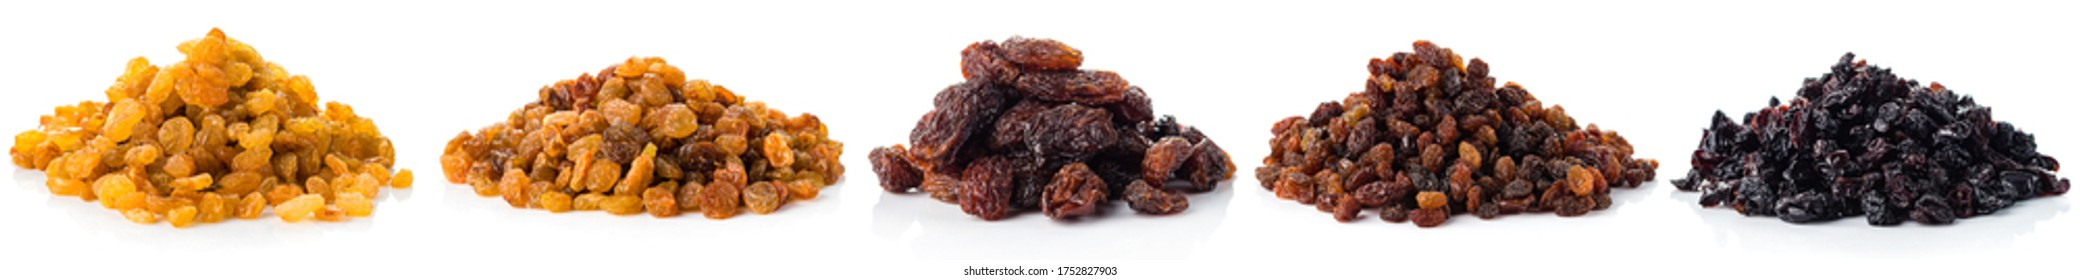 Collection of various raisins isolated, different varieties of raisins set on white background